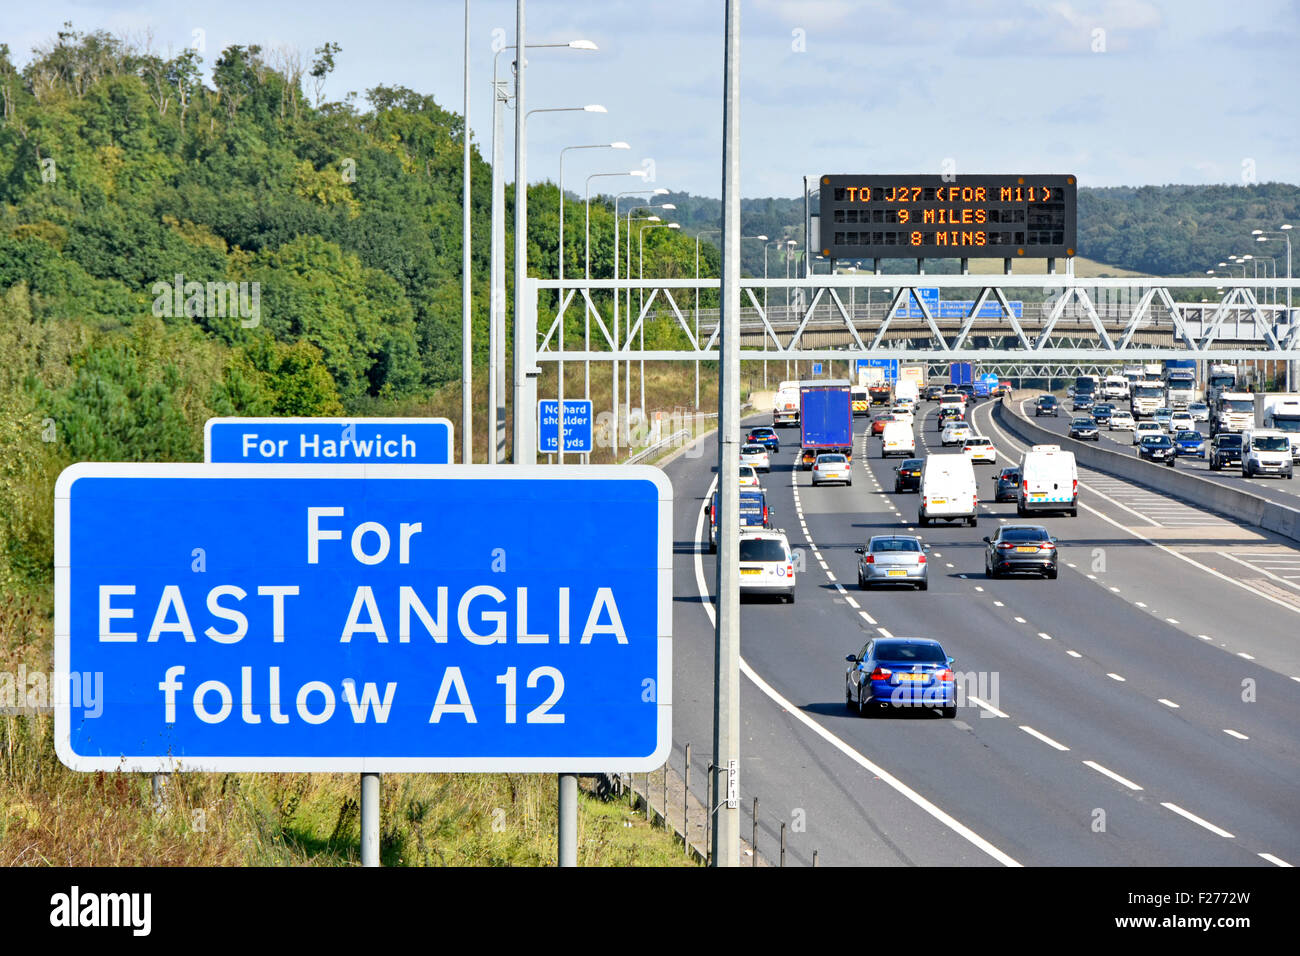 M25 motorway gantry mounted electronic information sign with conventional blue roadside signs for East Anglia route - Stock Image